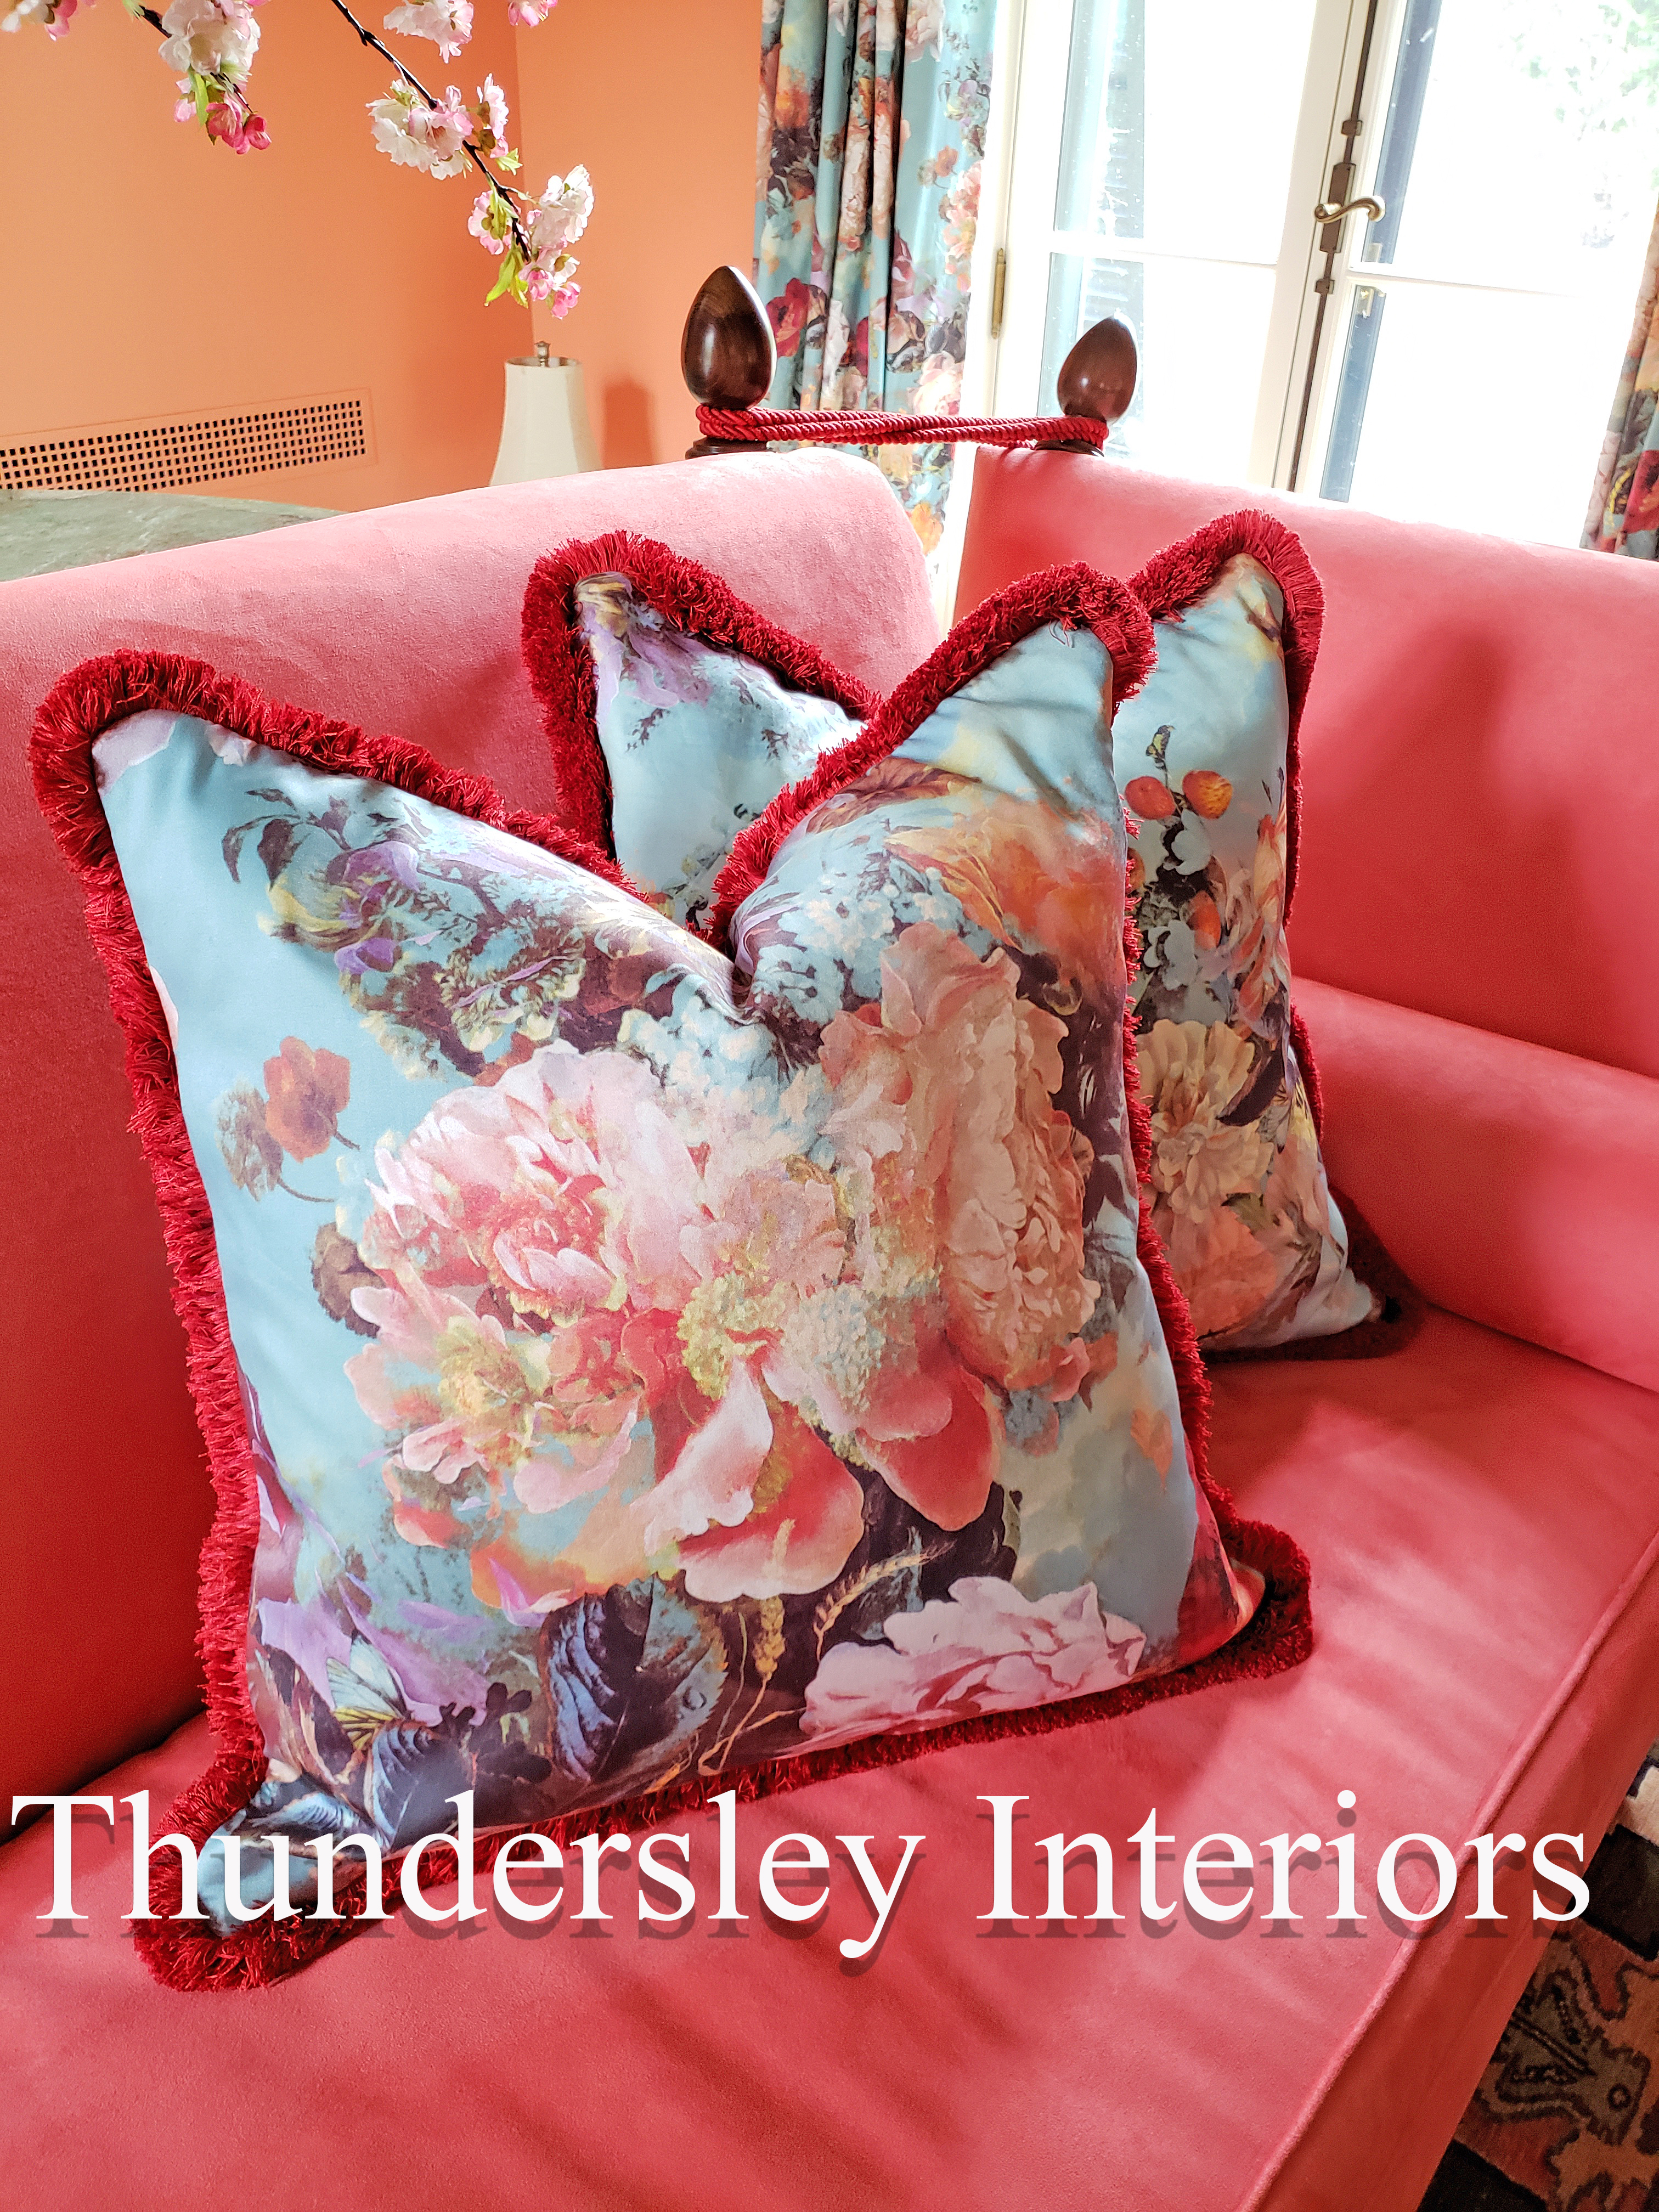 luxury throw pillows in Stamford, CT | Thundersley Interiors